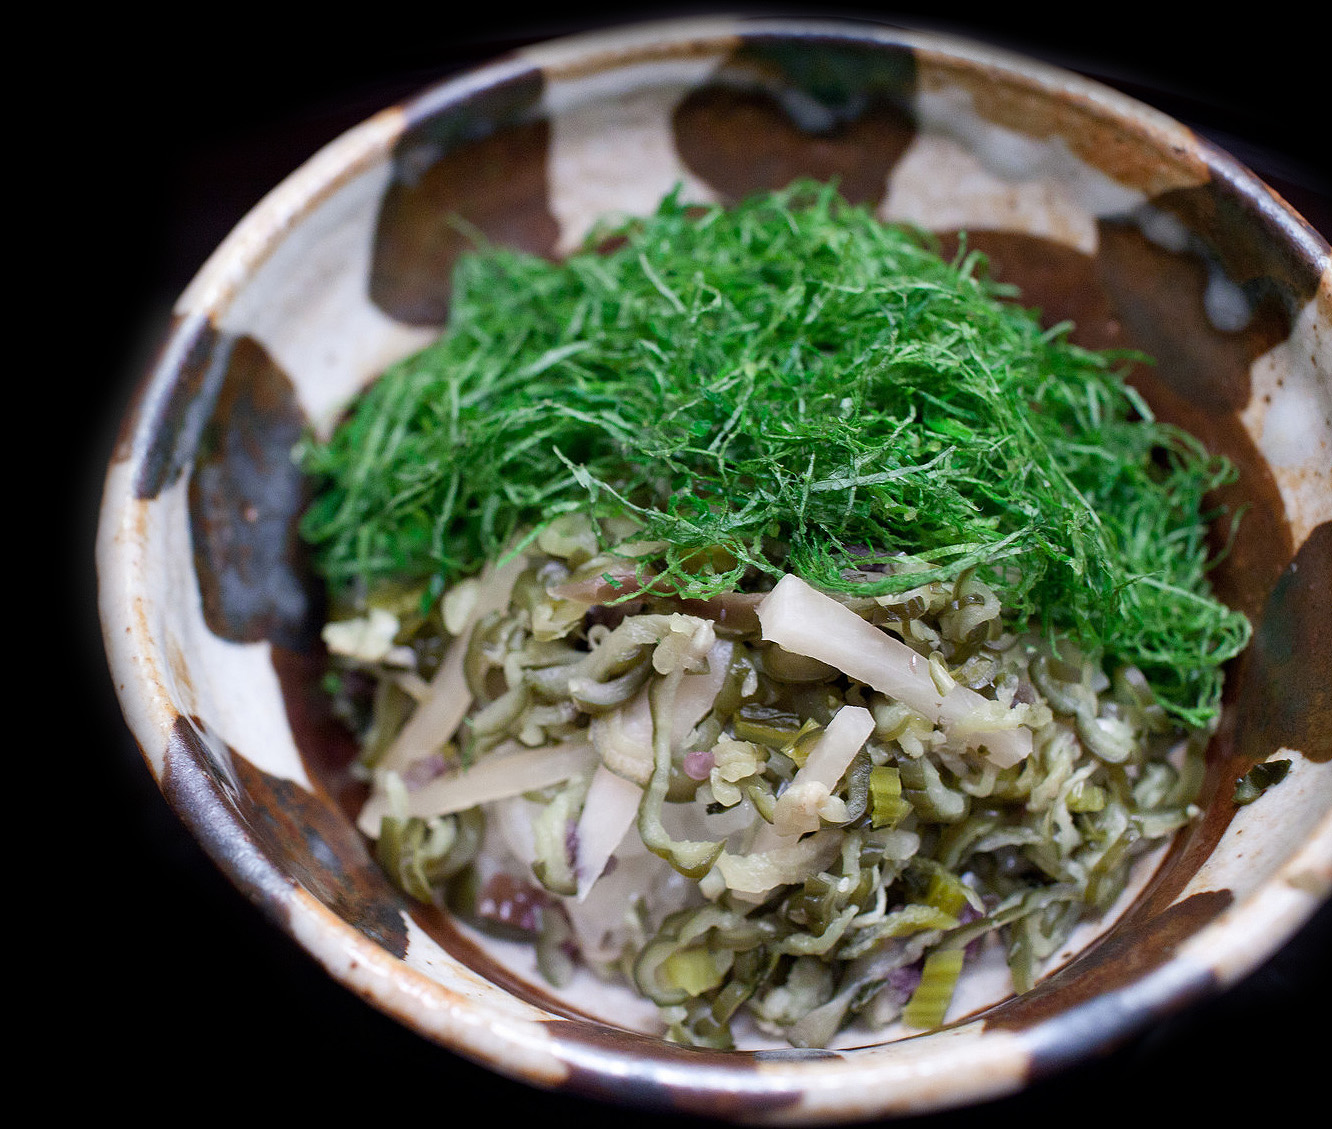 Chihana, Kyoto, Japan - Rice with fresh shiso, pickled vegetables, and mushrooms